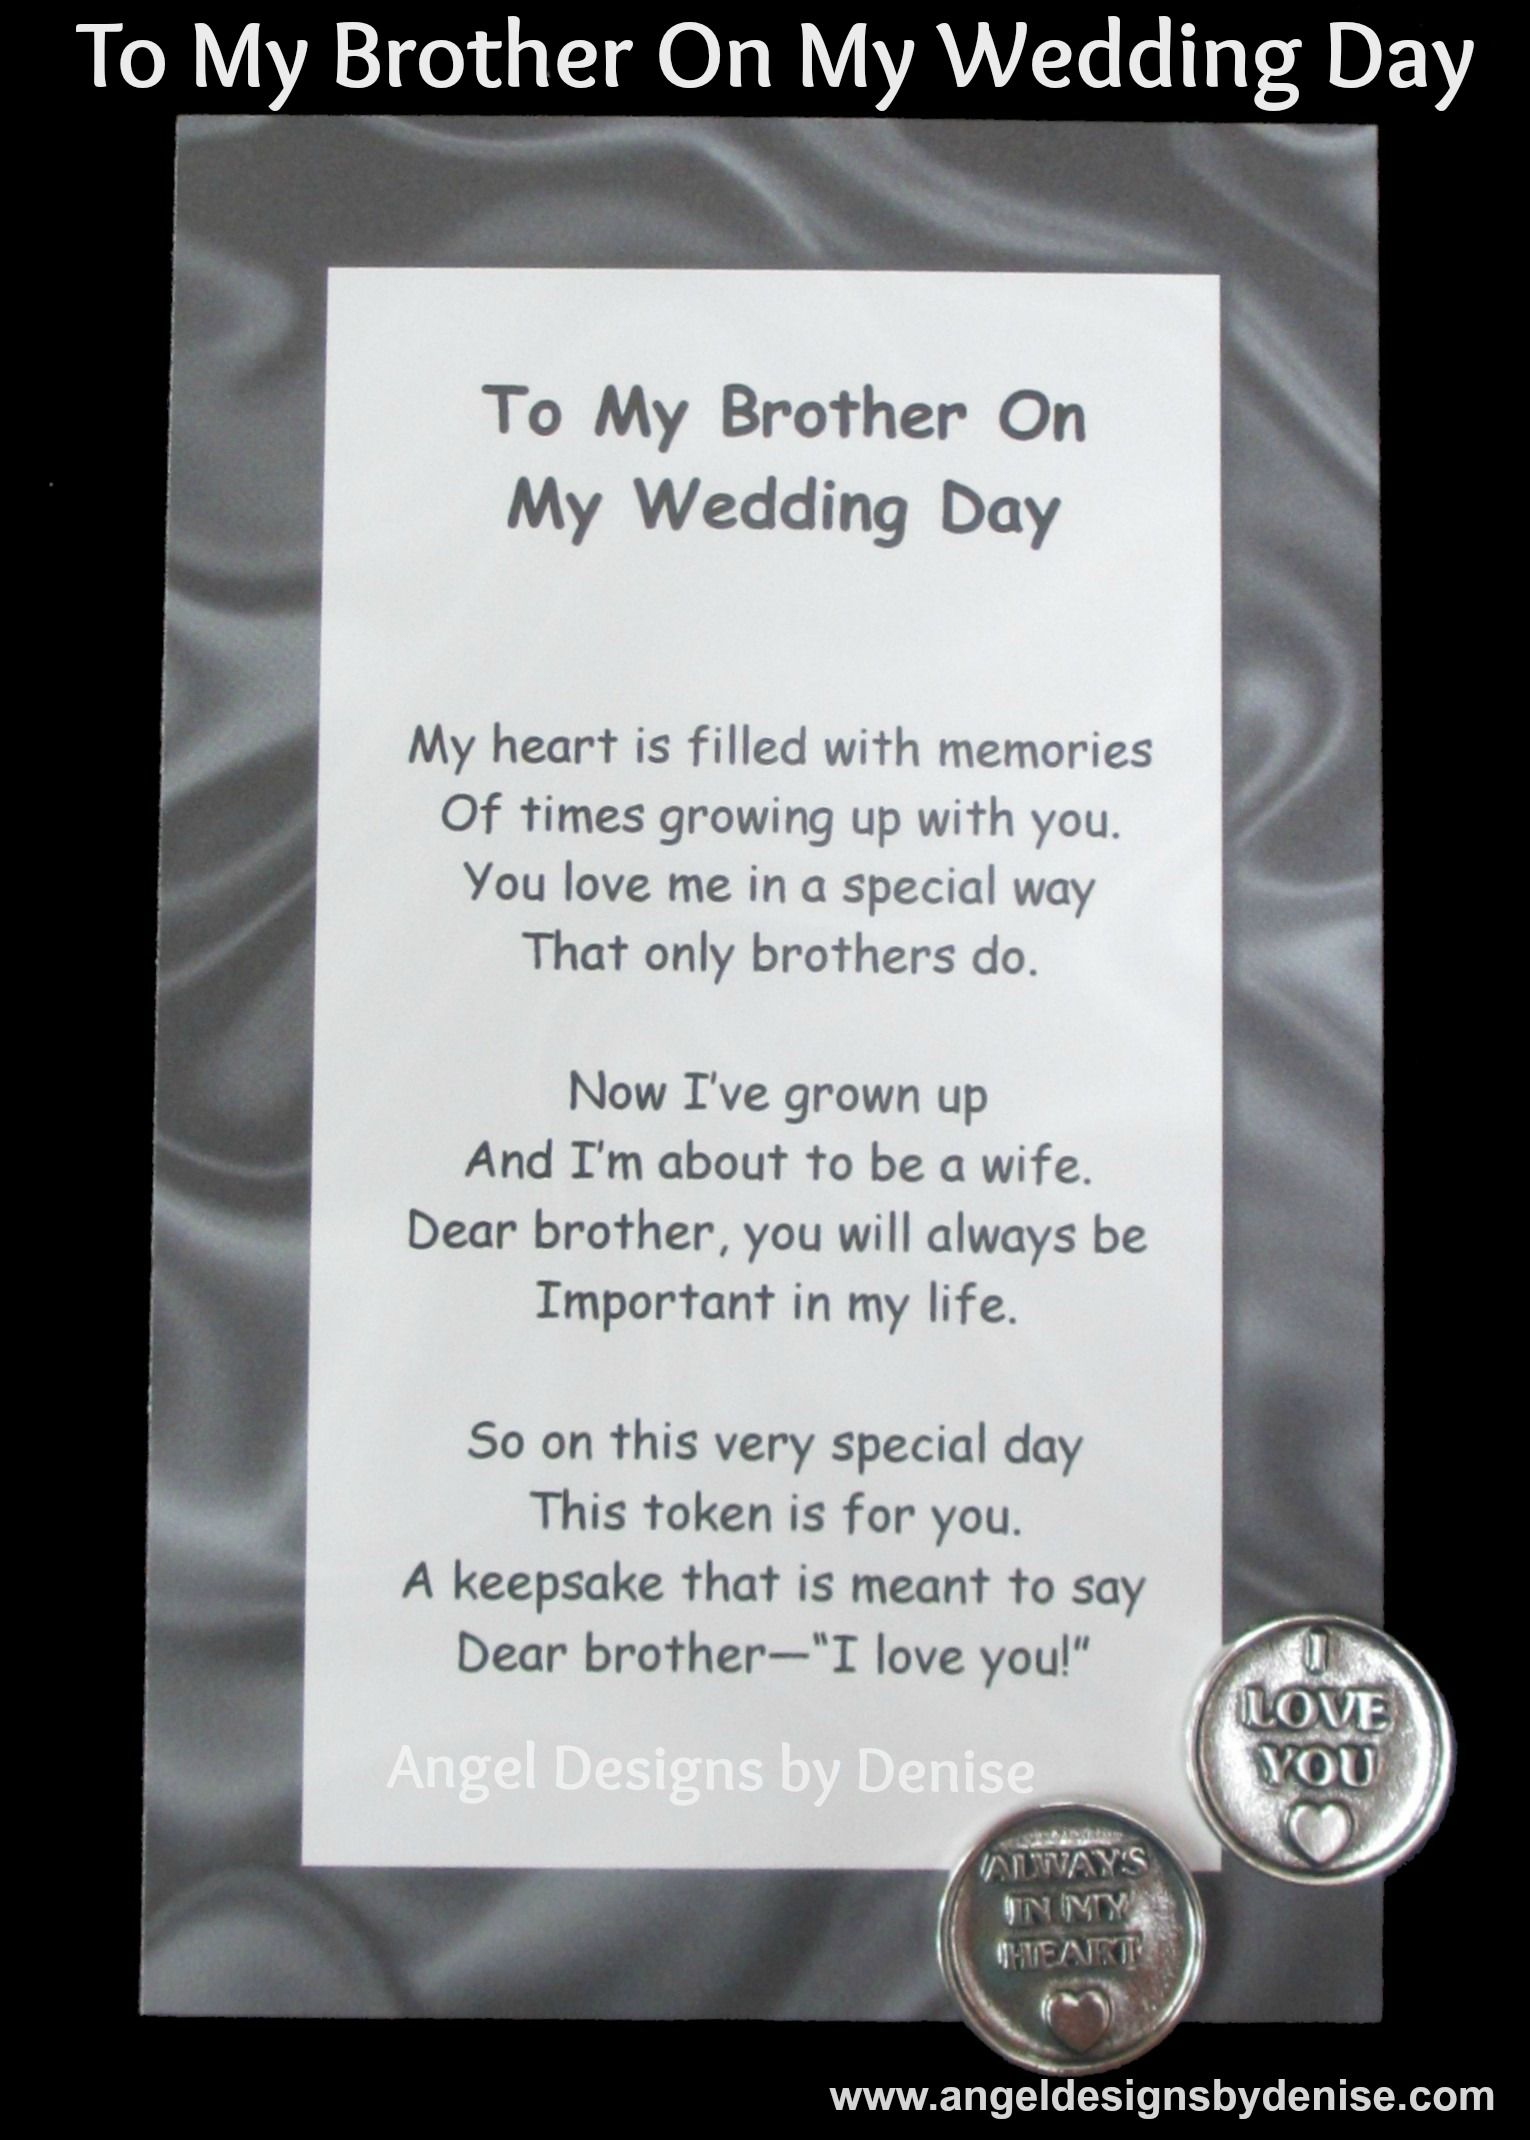 To My Brother On Wedding Day Price 4 00 Each Description Give This Heartfelt